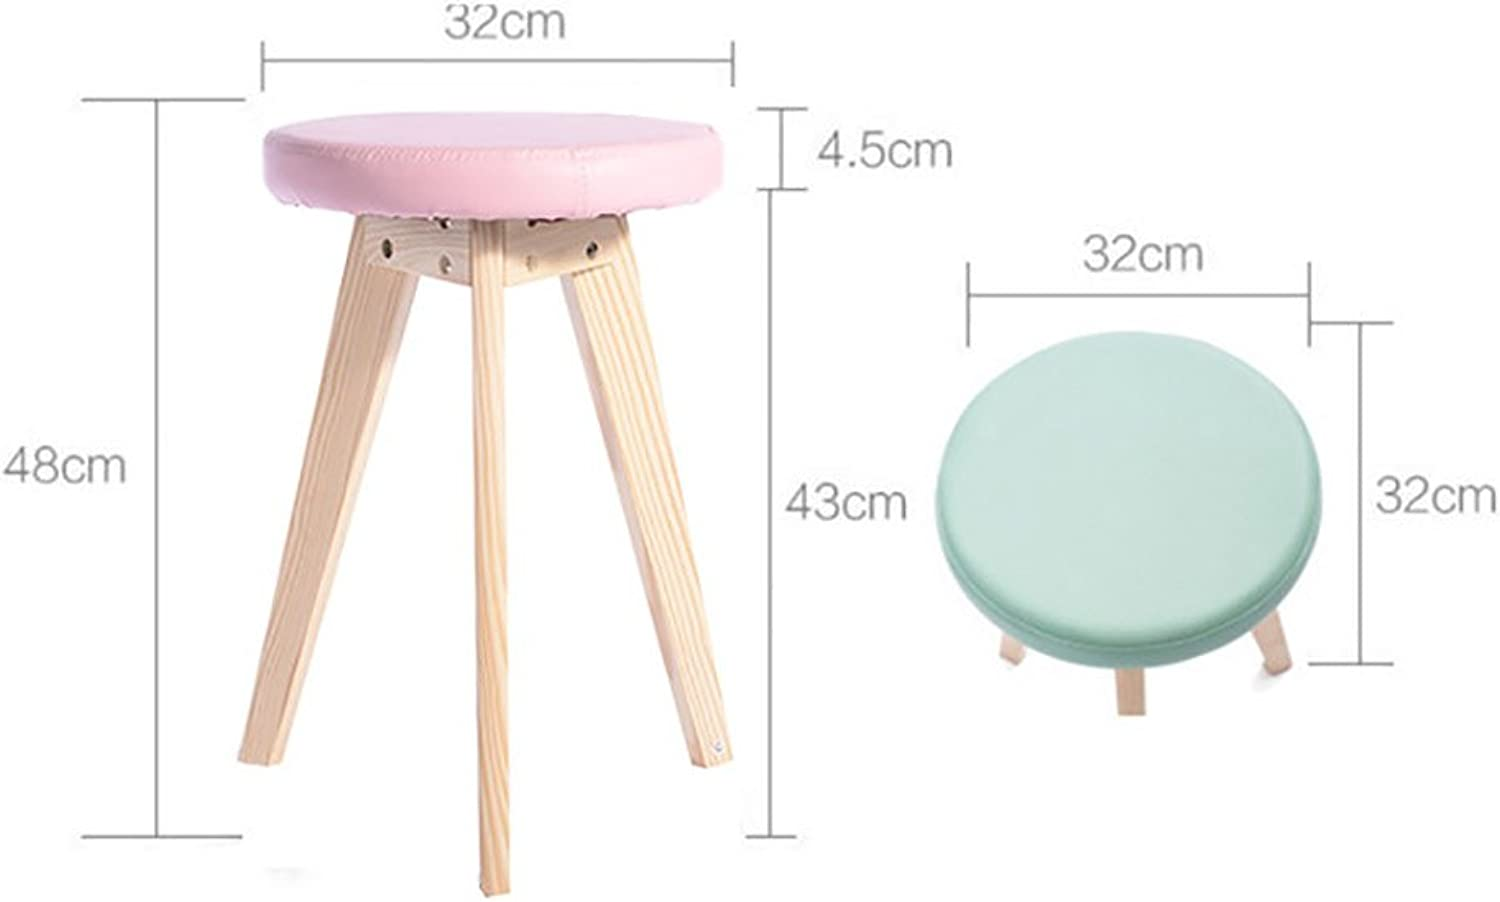 European Chair Solid Wood Stool, Dining Stool Leisure Chair Home Creative Leisure Dressing Stool Small Stool